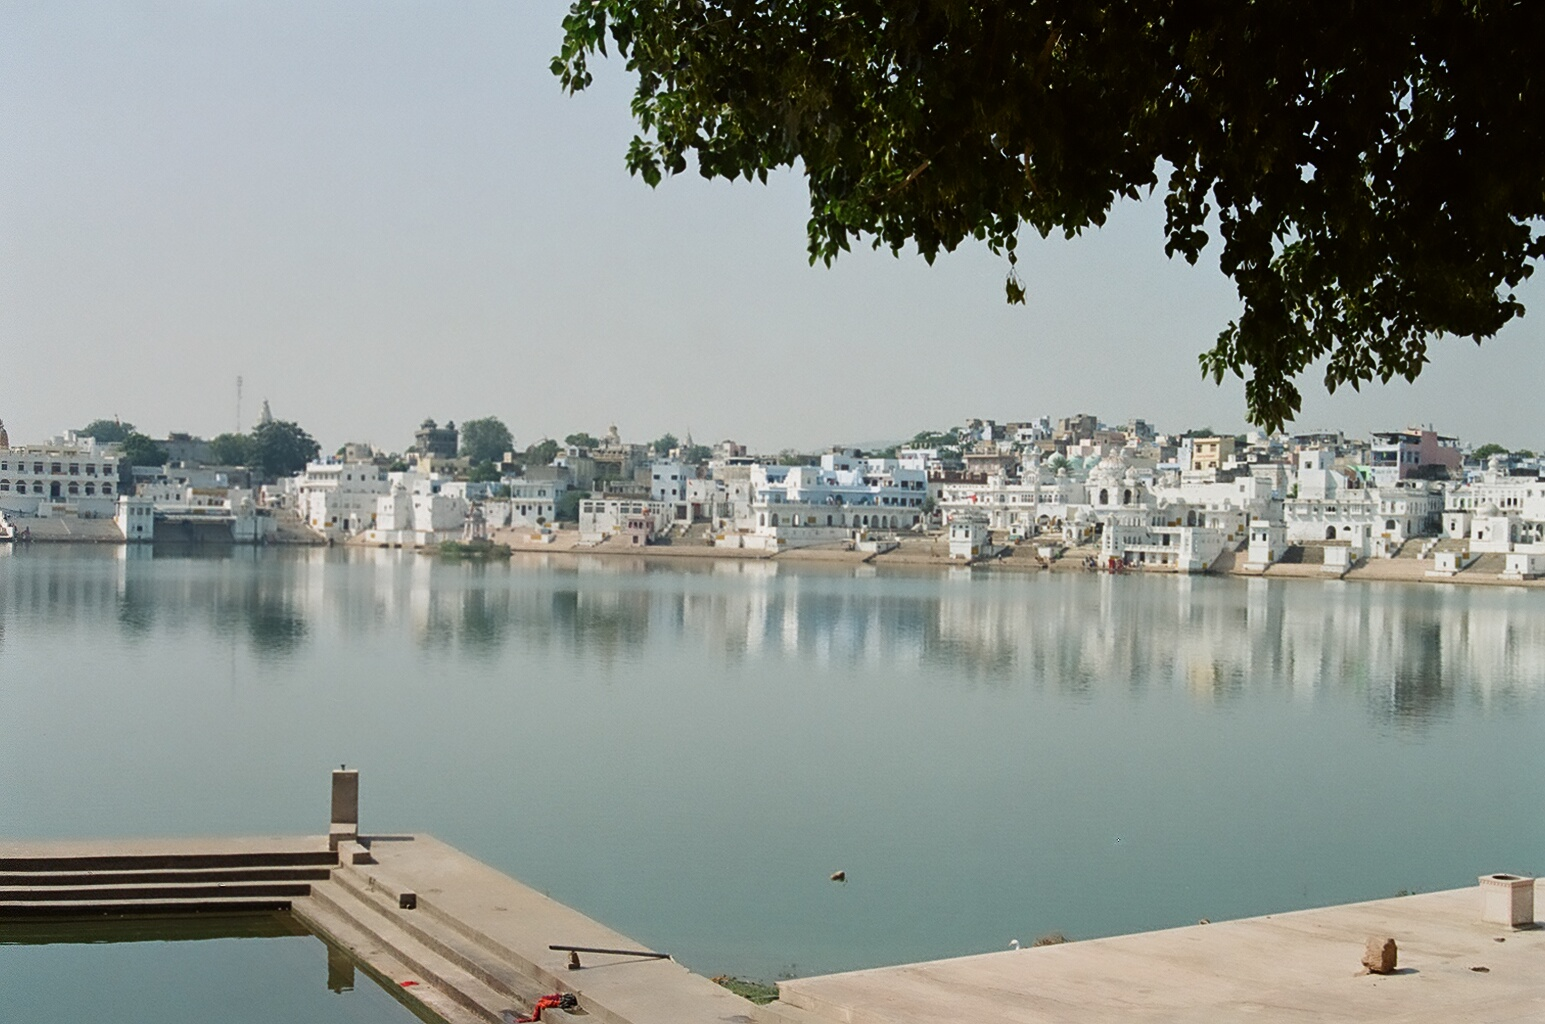 Pushkar India  City pictures : Description Pushkar Lake, India